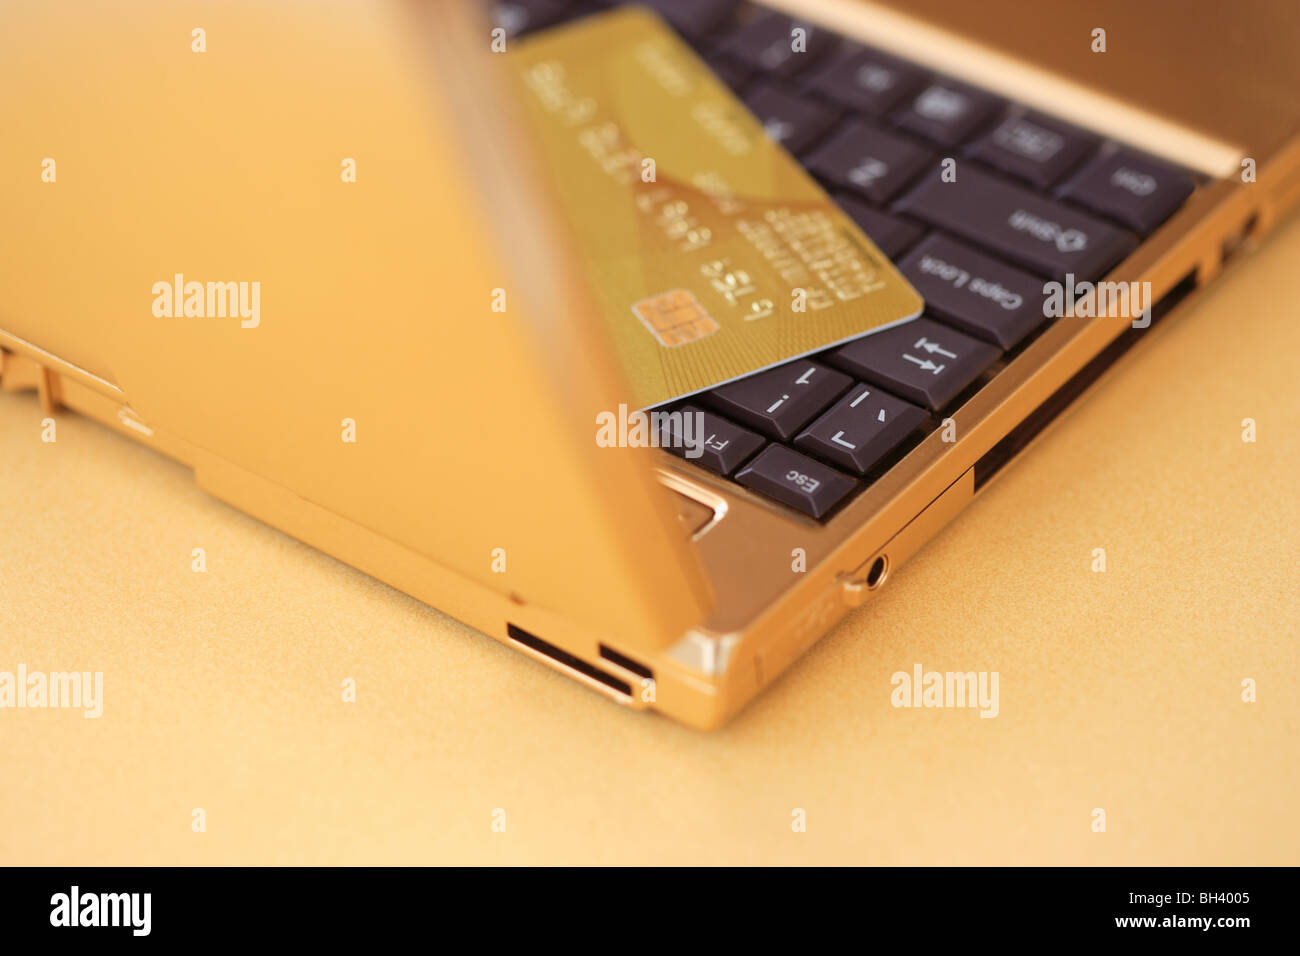 A golden laptop computer and a golden credit card on a golden desk Stock Photo